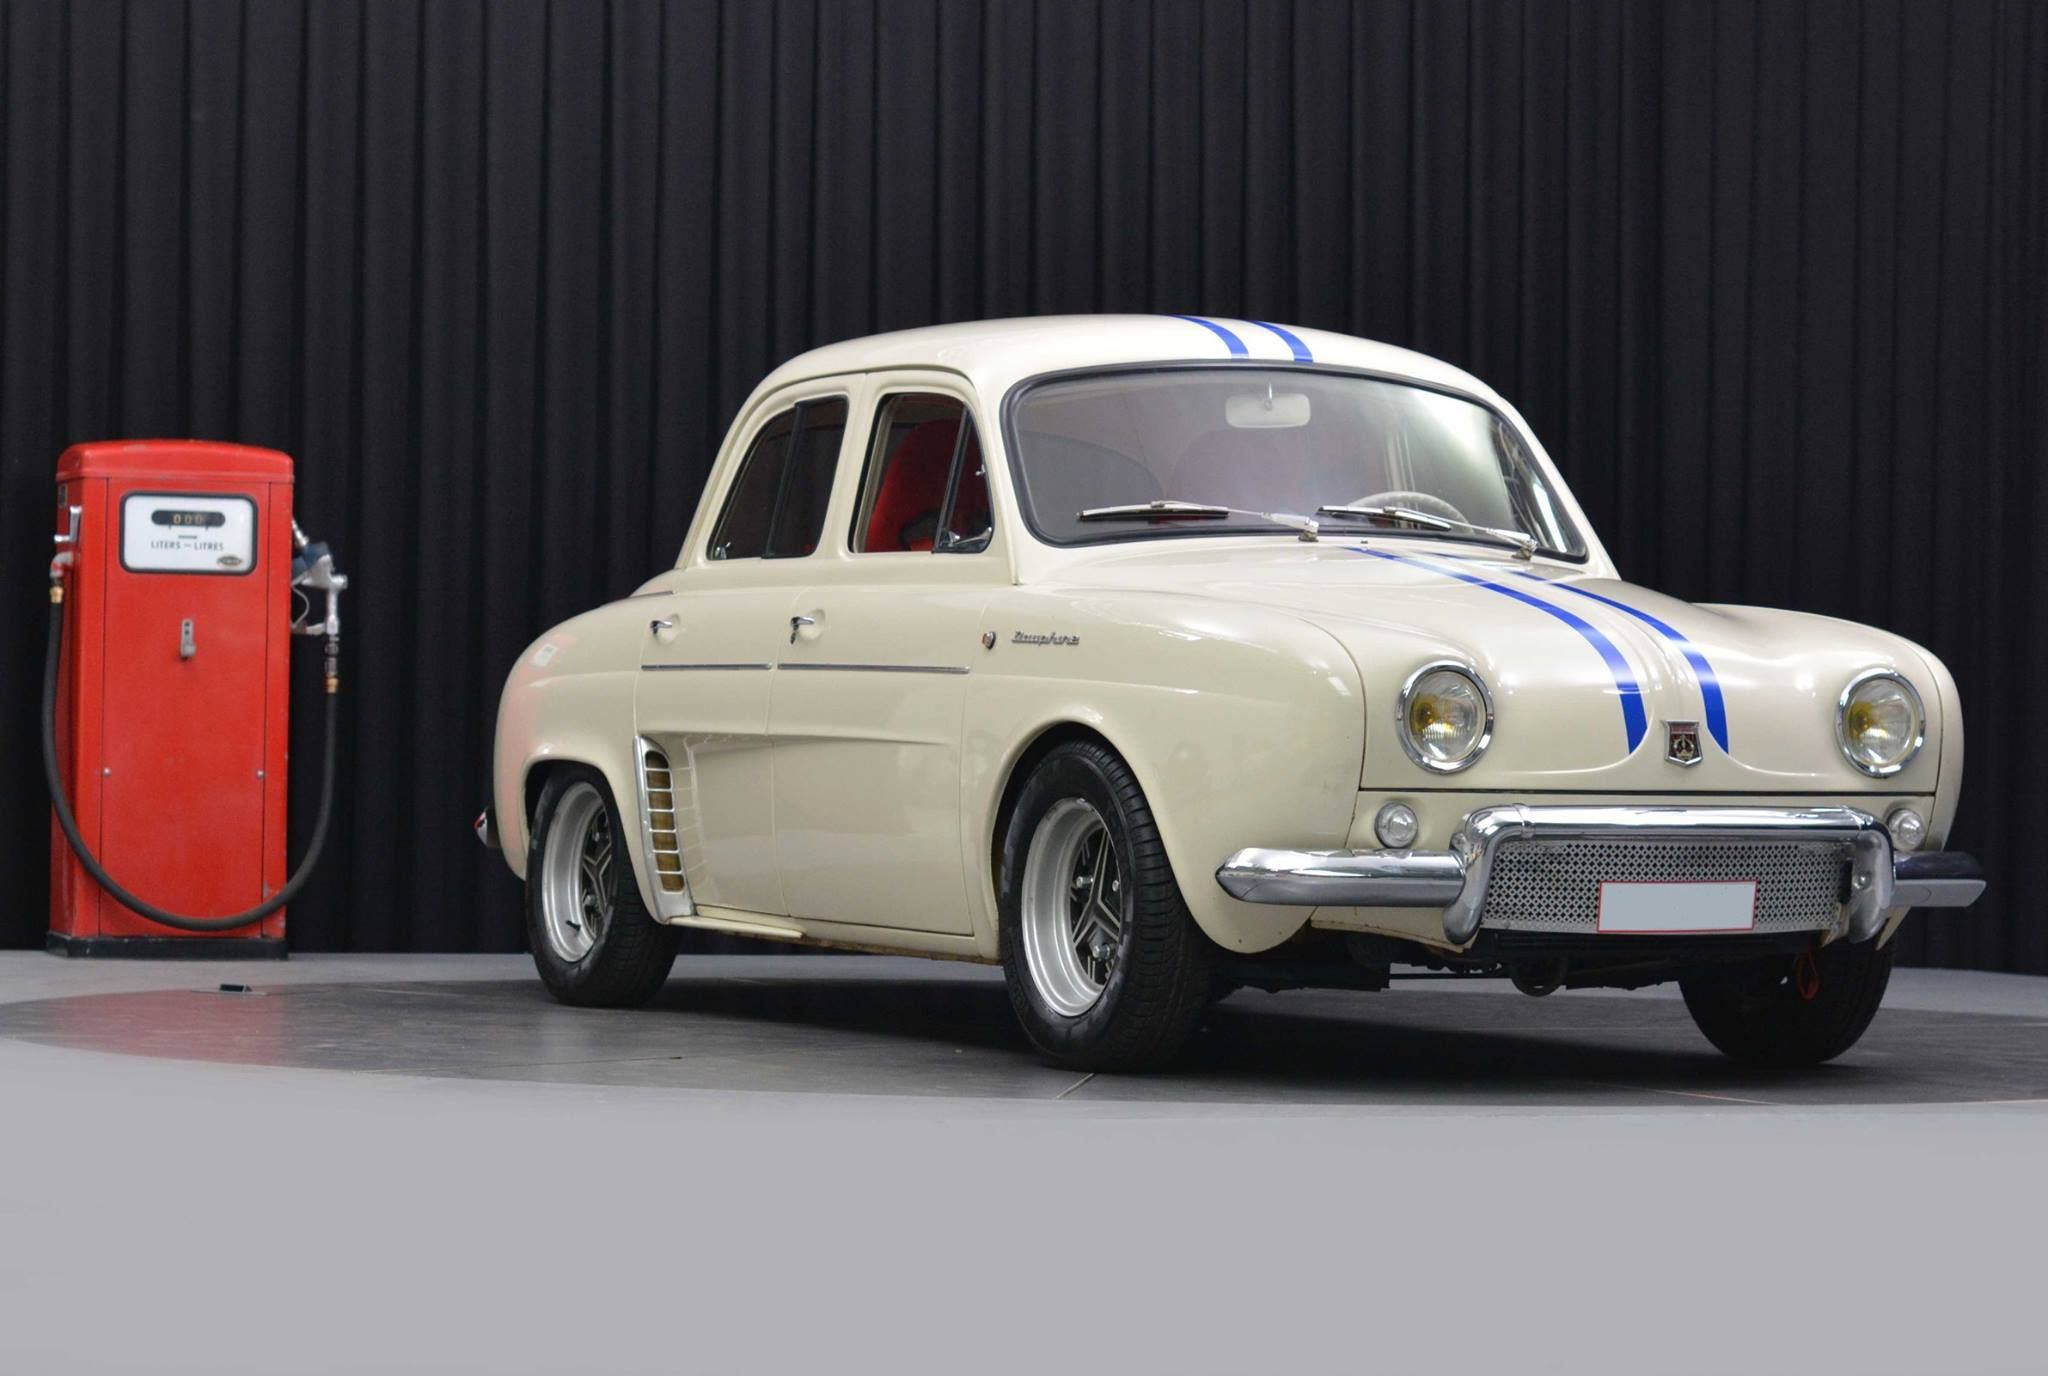 There are currently 8494 renault dauphine cars as well as thousands of other iconic classic and collectors cars for sale on classic driver